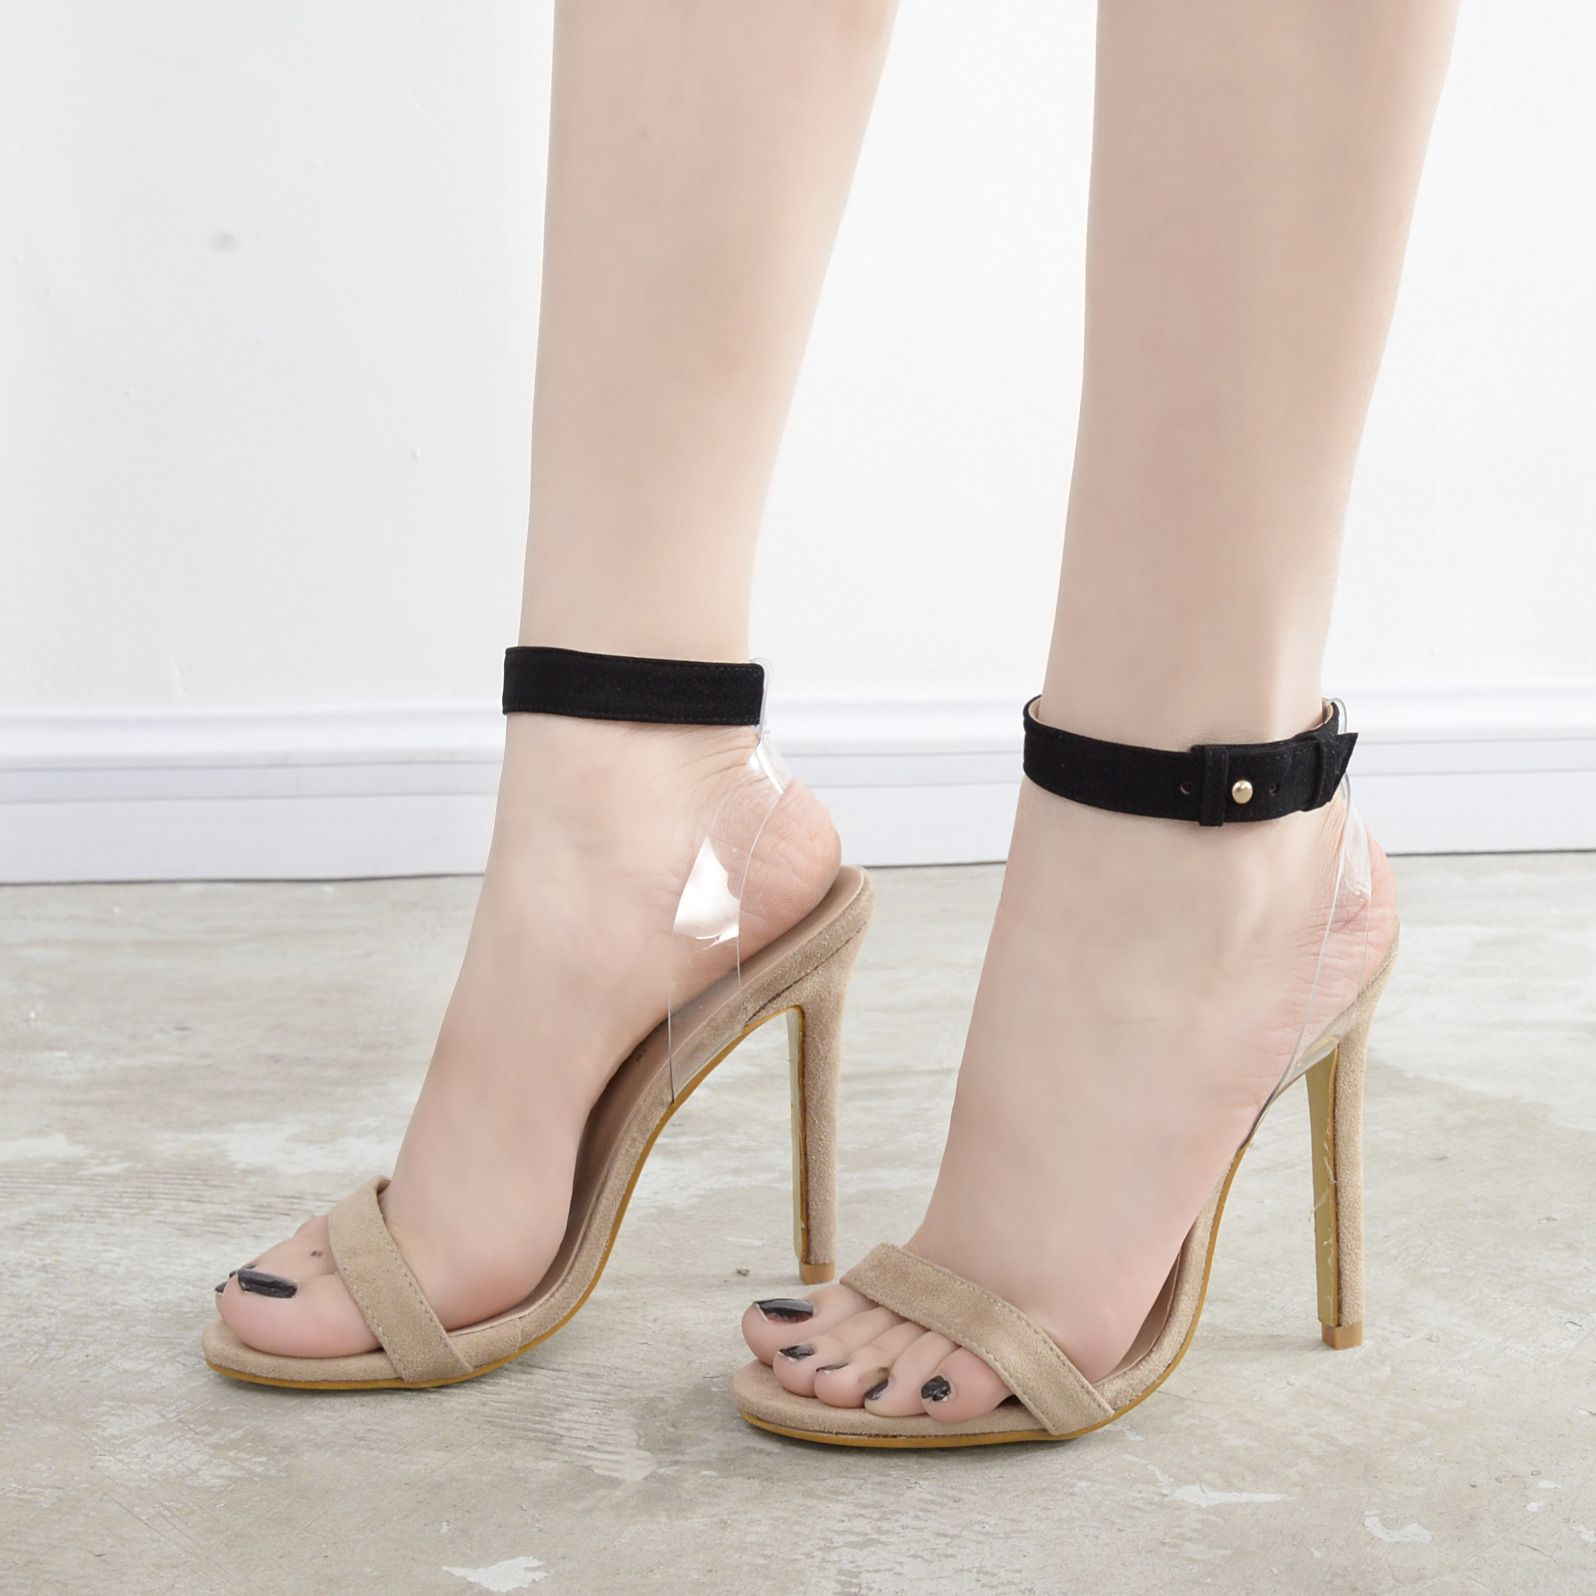 bc7cd217ef2f The Latest Women s Shoes New Sexy Goddess Essential Section Transparent  Film High-heeled Suede Sandals Shallow Mouth Sandals